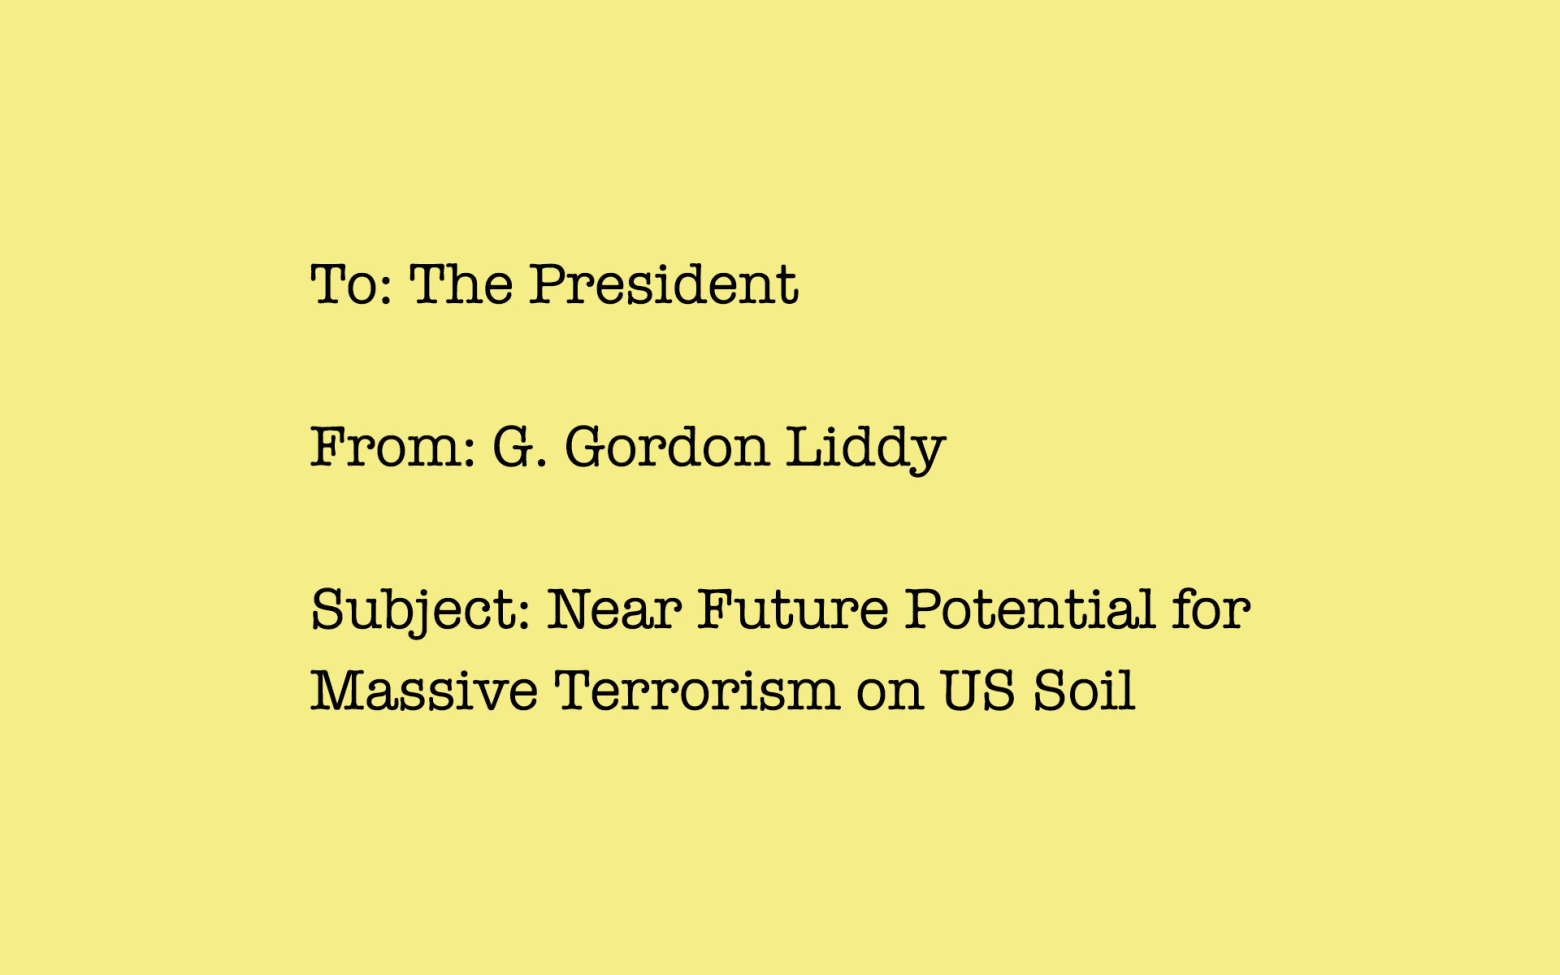 This Fictional Memo to the President from 1989 Predicted Terrorism in the US